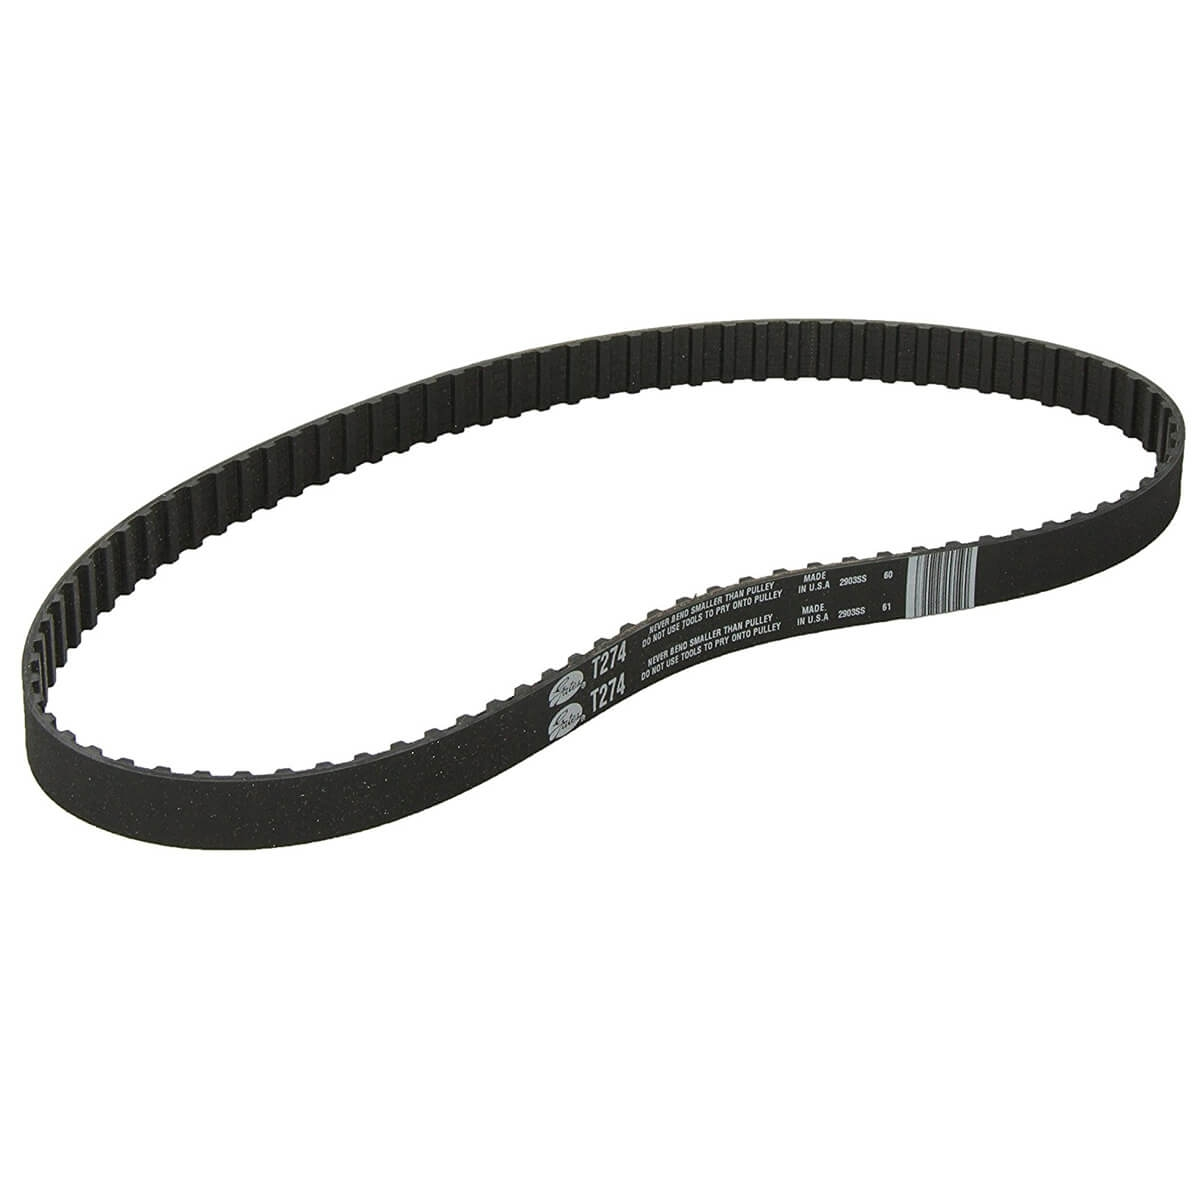 CITROEN C4 GRAND PICASSO Timing Belt